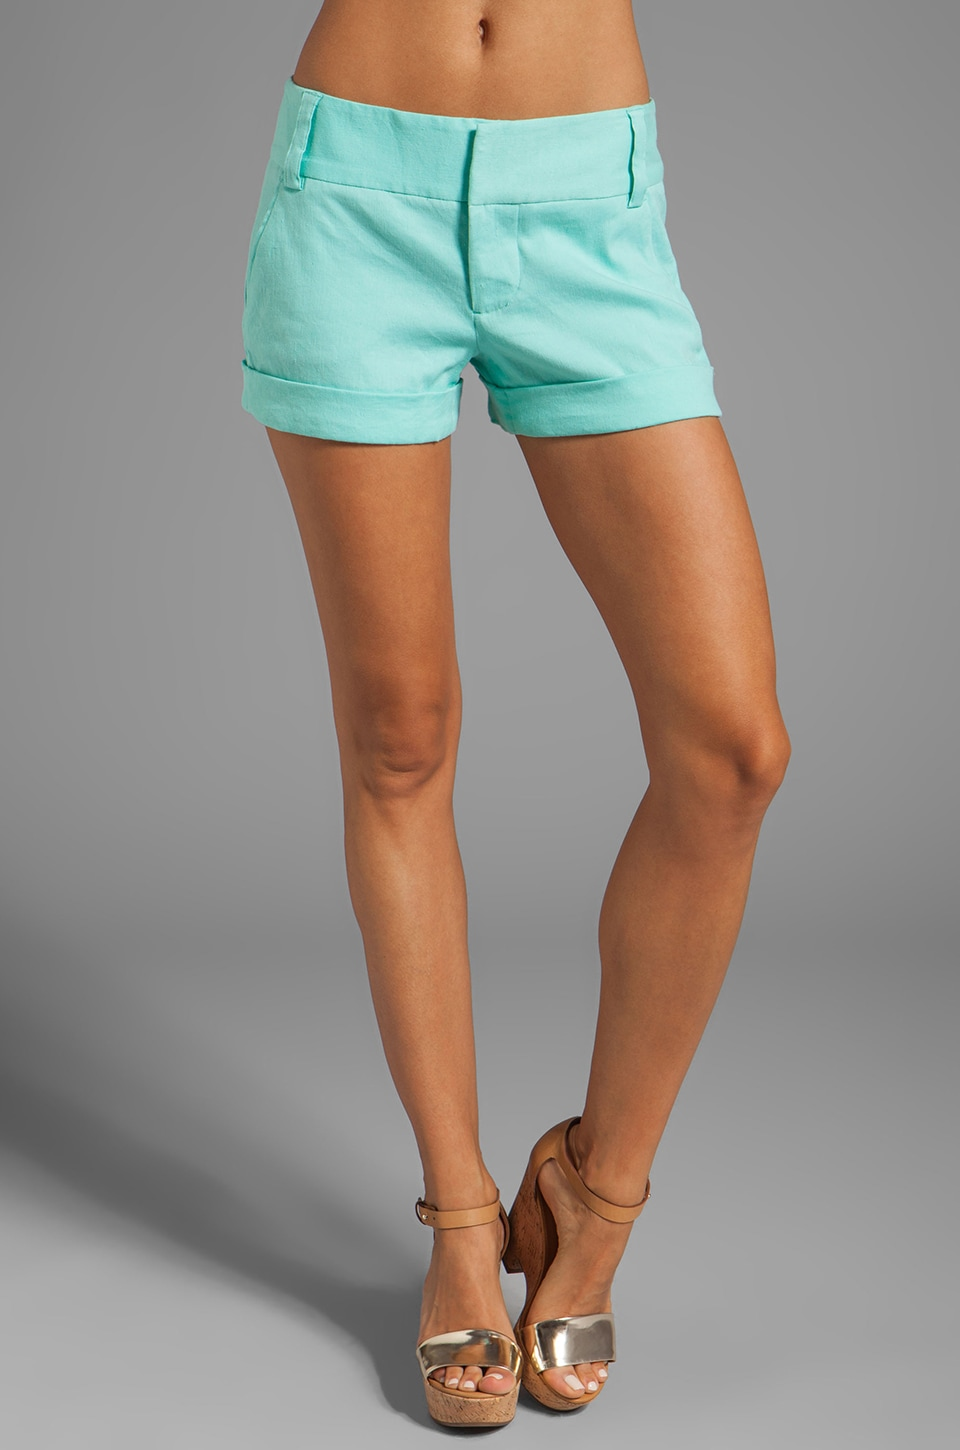 Alice + Olivia Cady Cuff Short in Aqua Splash